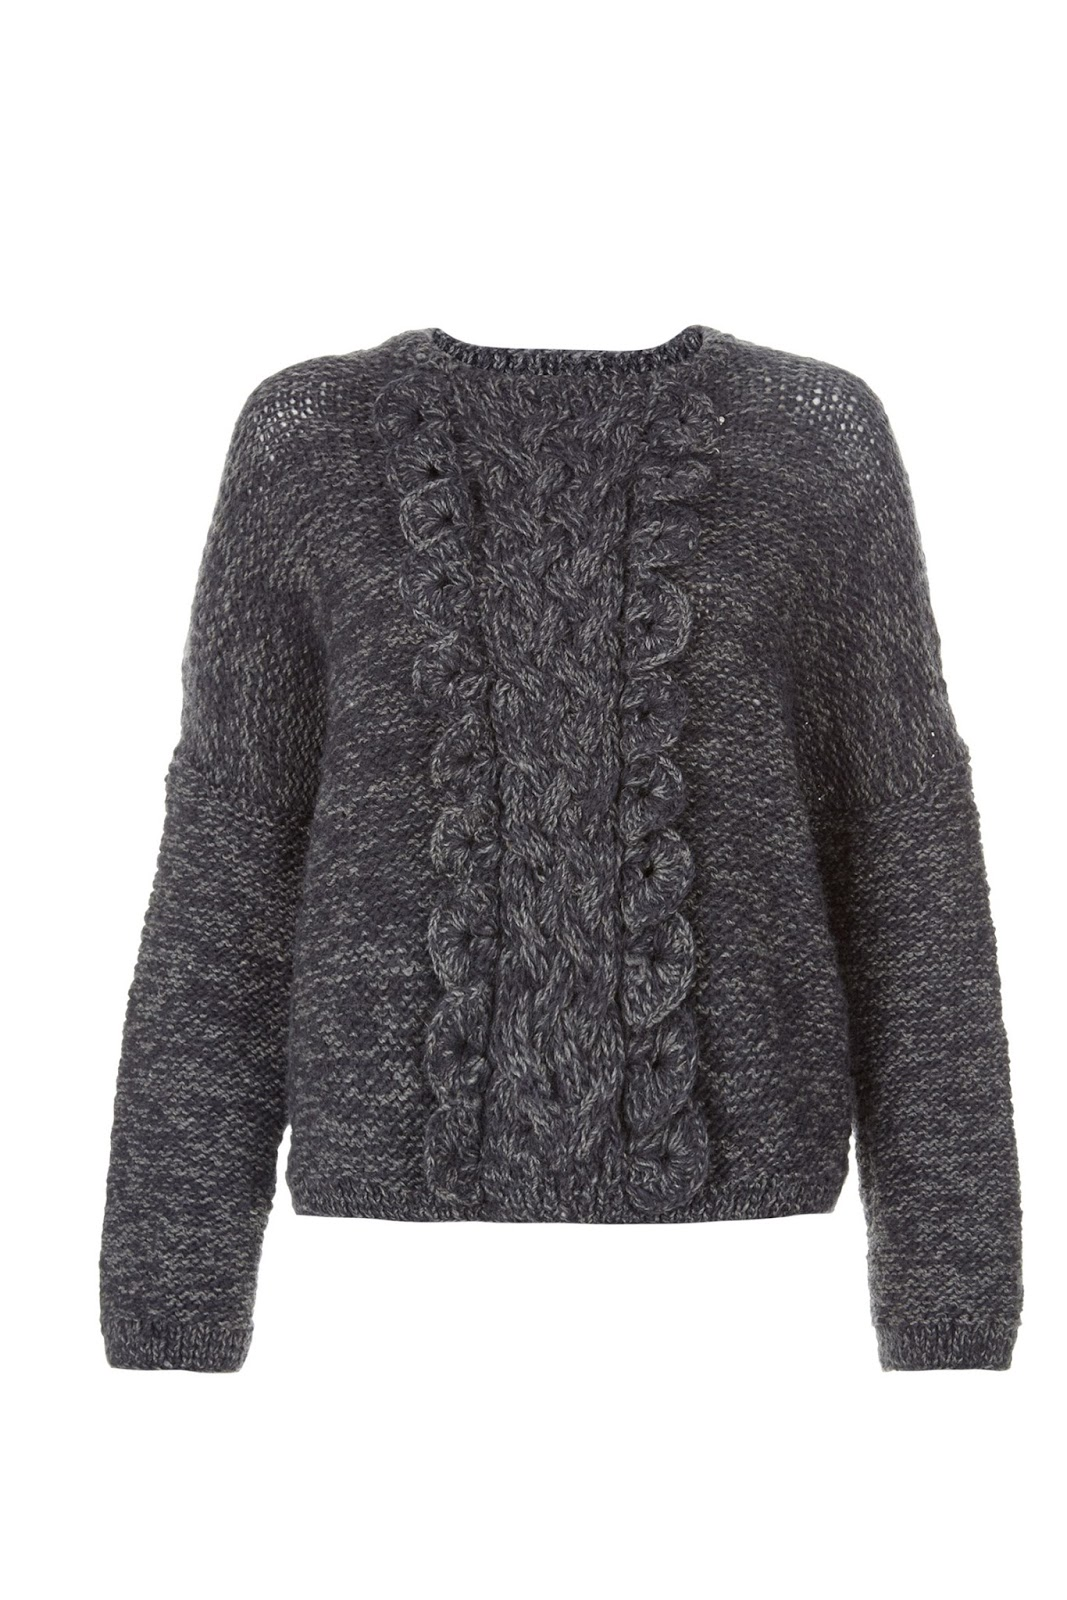 http://www.peopletree.co.uk/women/knitwear/rosa-ruffle-jumper